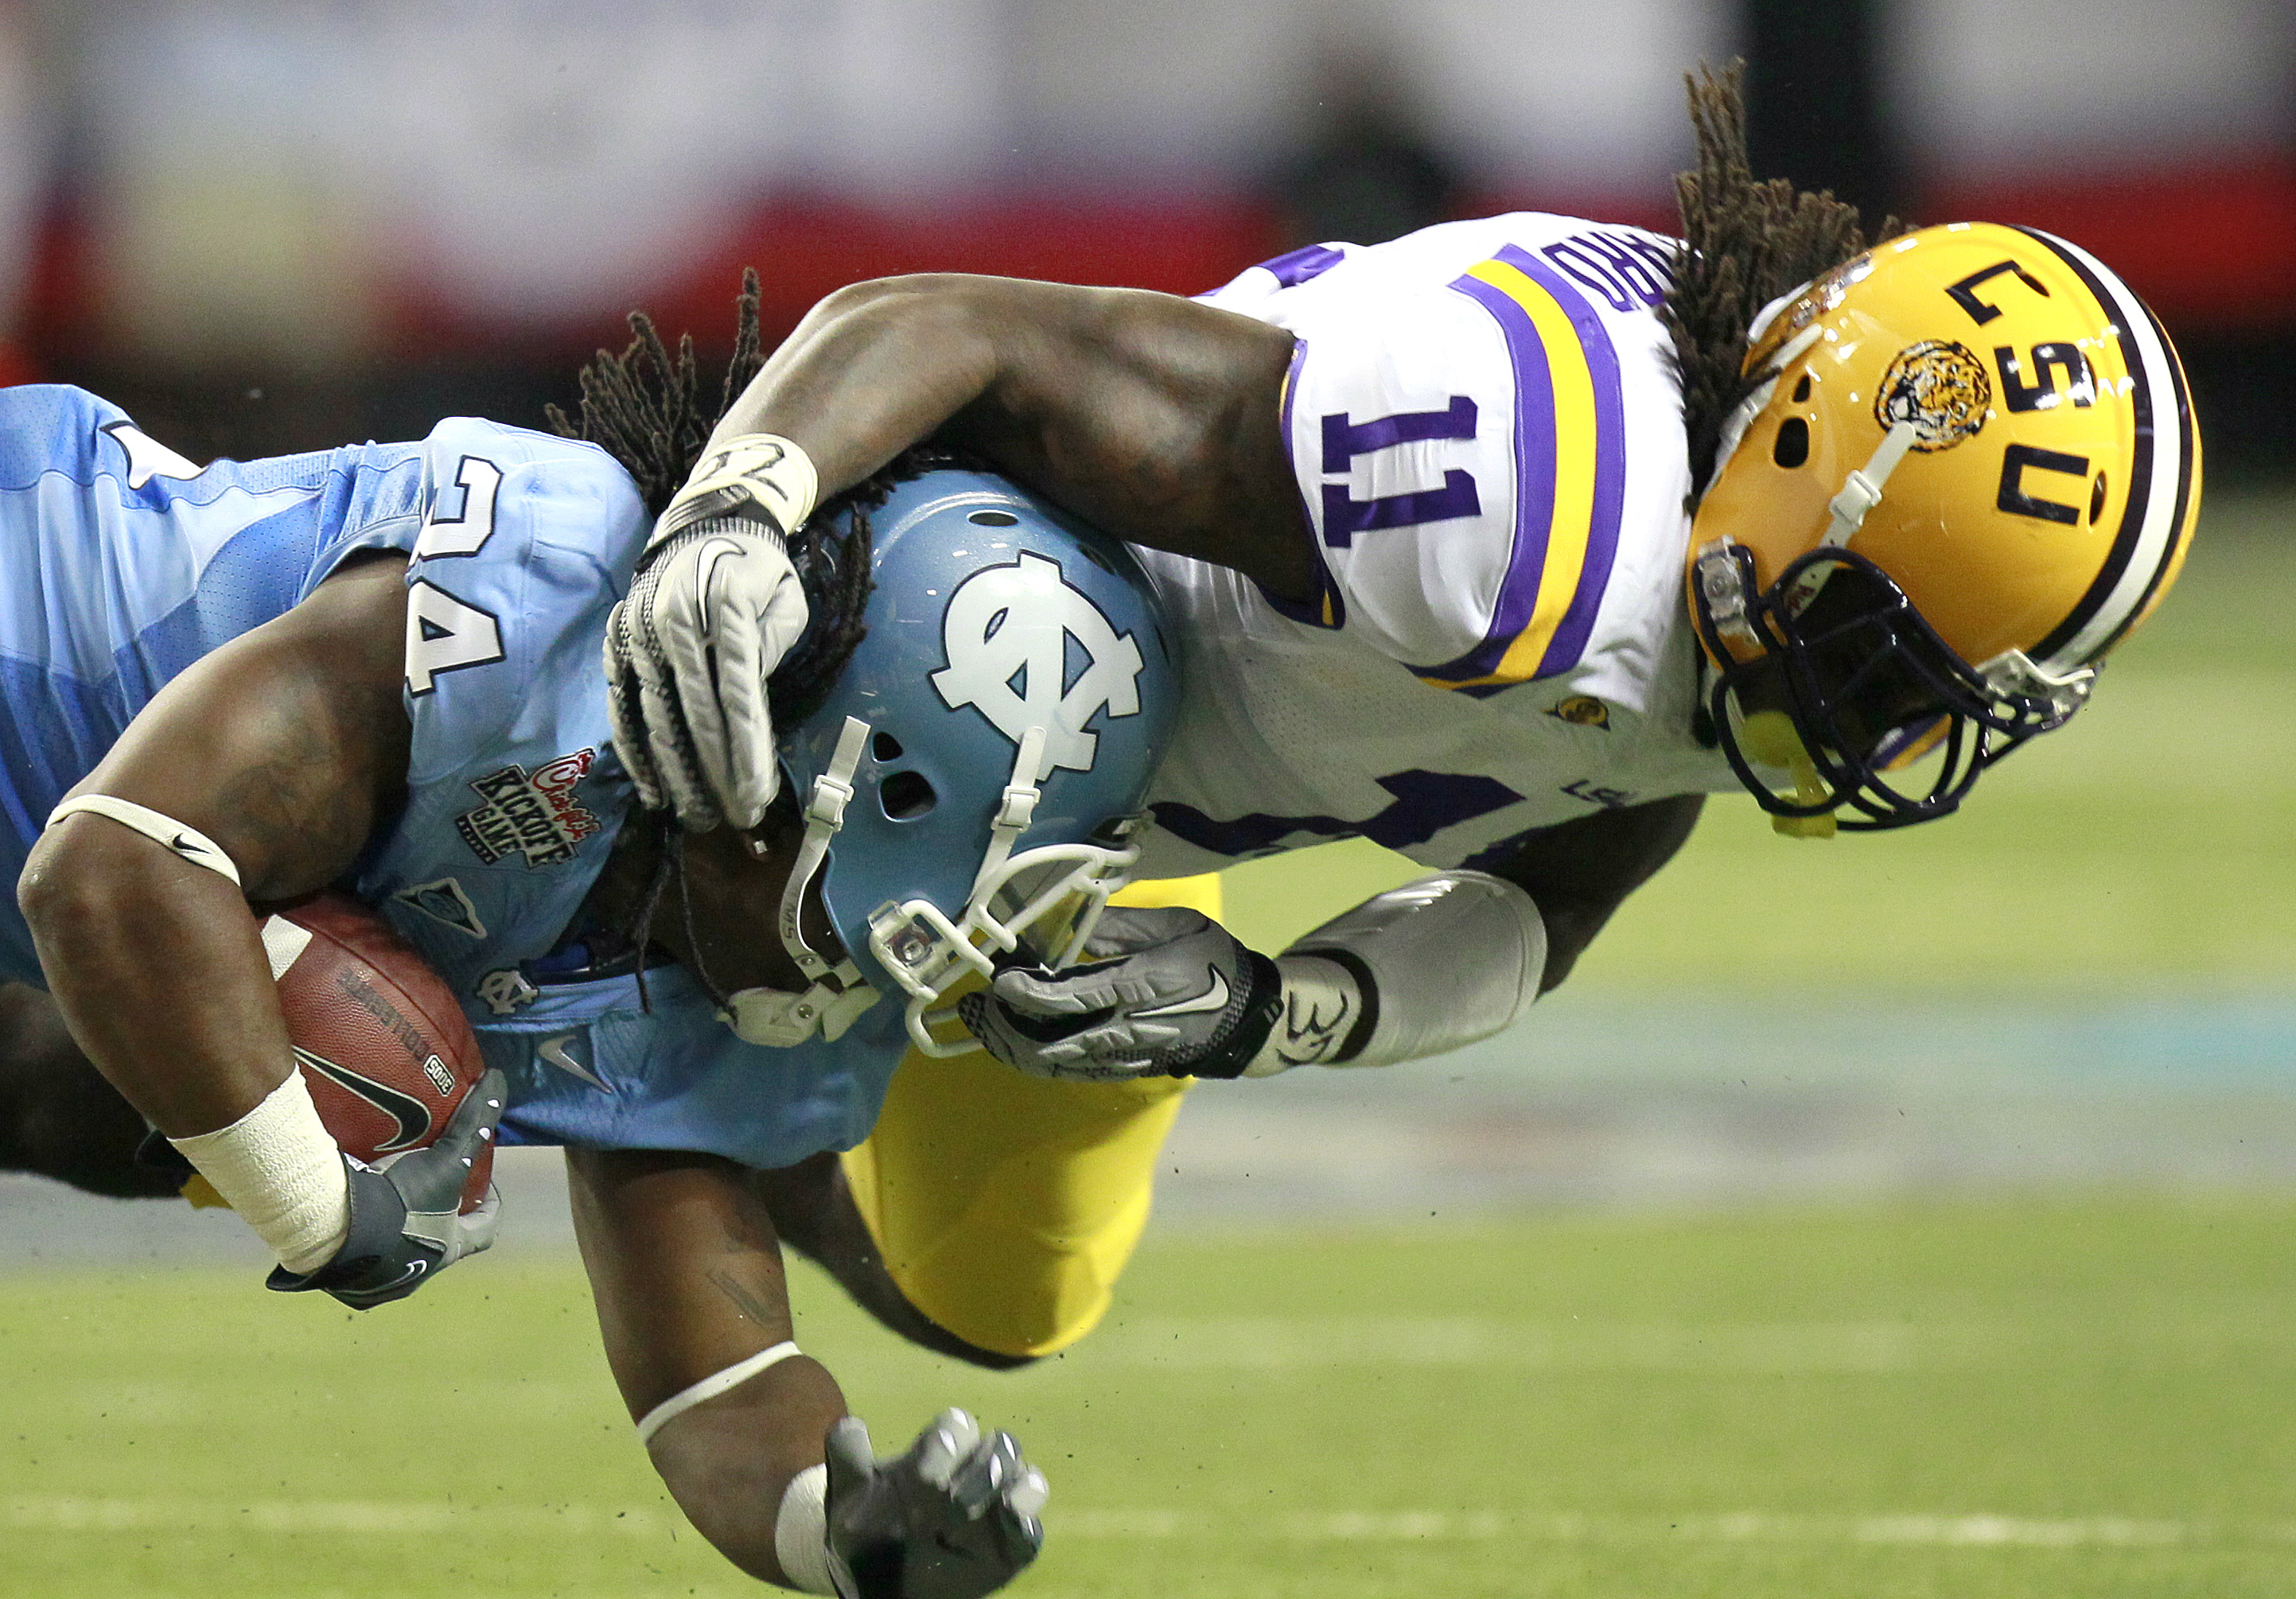 ATLANTA - SEPTEMBER 4: Kelvin Sheppard #11 of the LSU Tigers tackles Johnny White #34 of the North Carolina Tar Heels at the Georgia Dome September 4, 2010 in Atlanta, Georgia.  (Photo by Kevin C. Cox/Getty Images)